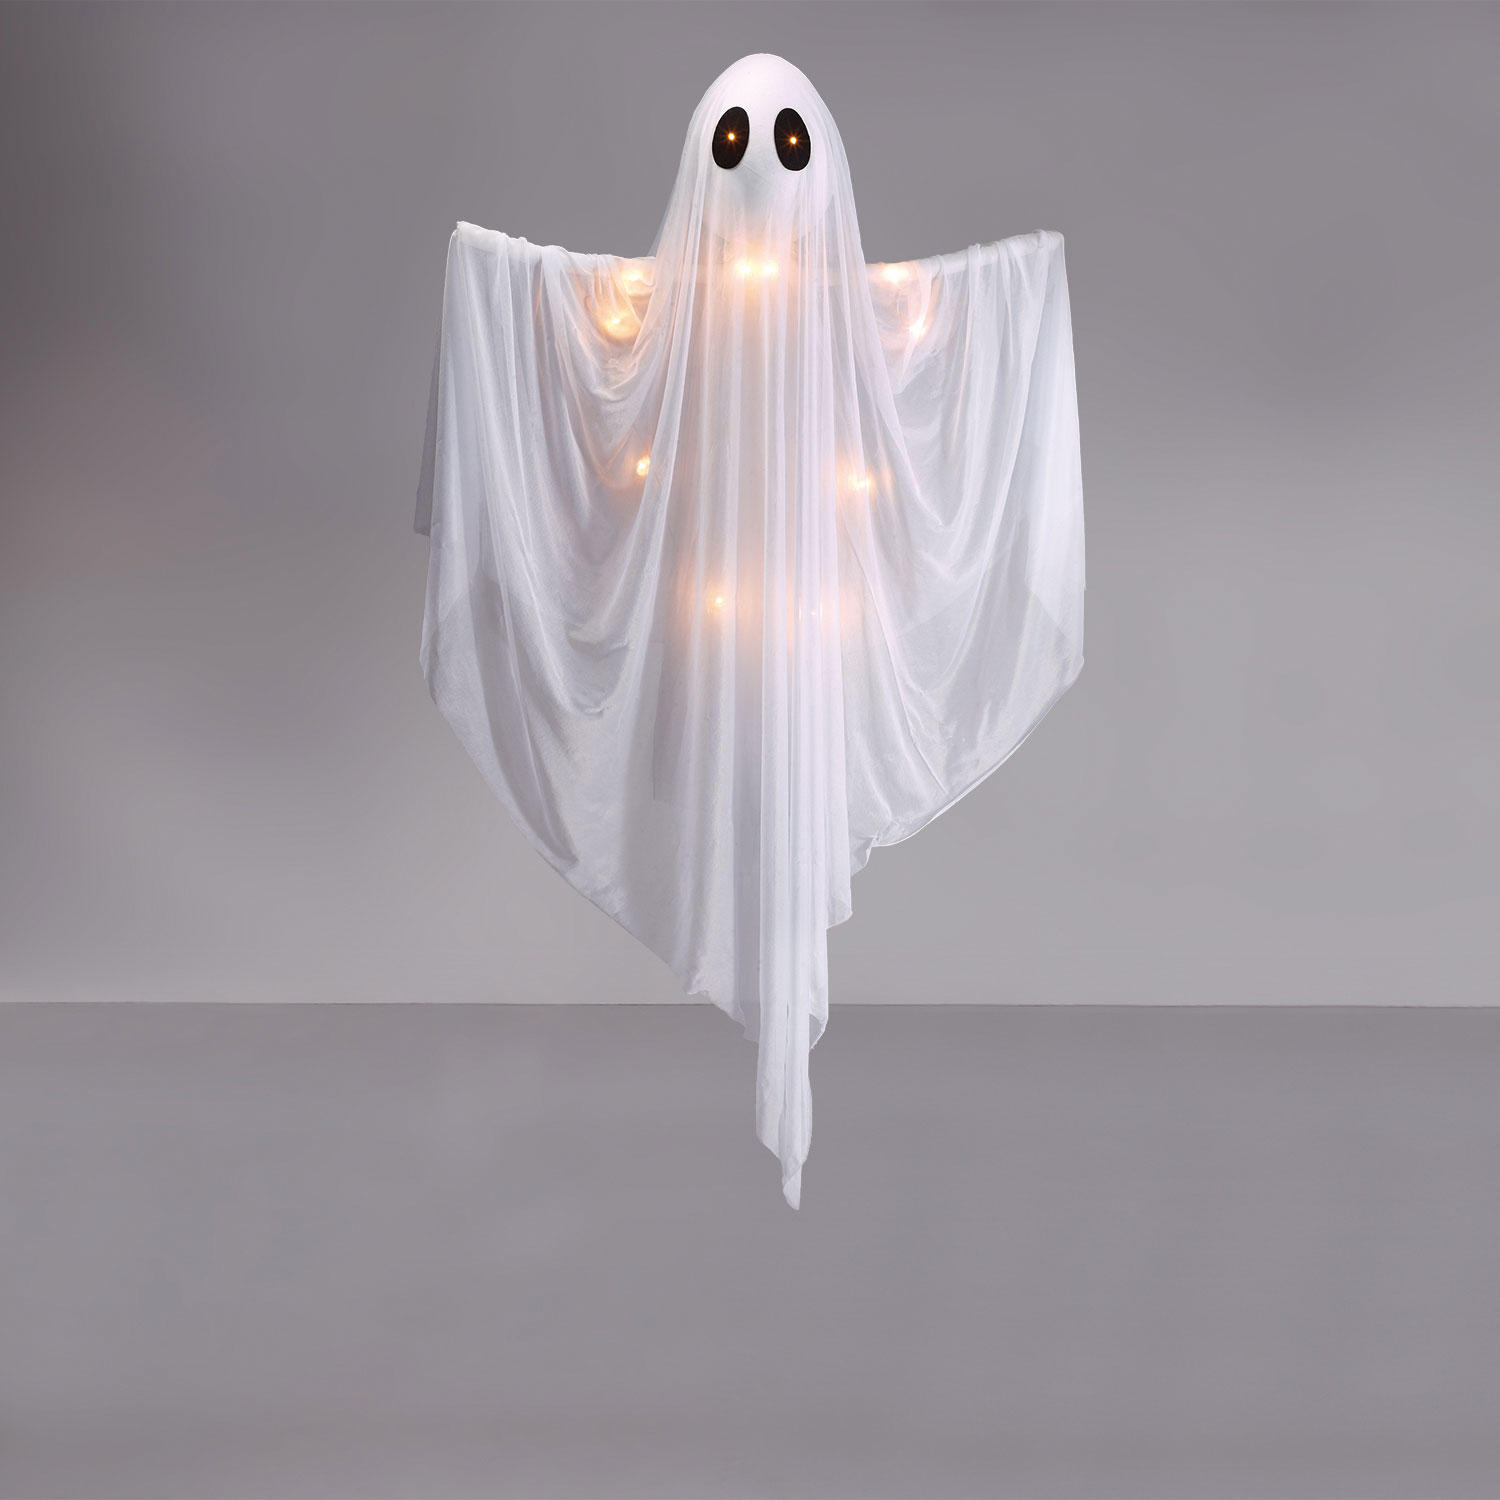 Hanging Ghost w/ Light Up Eyes